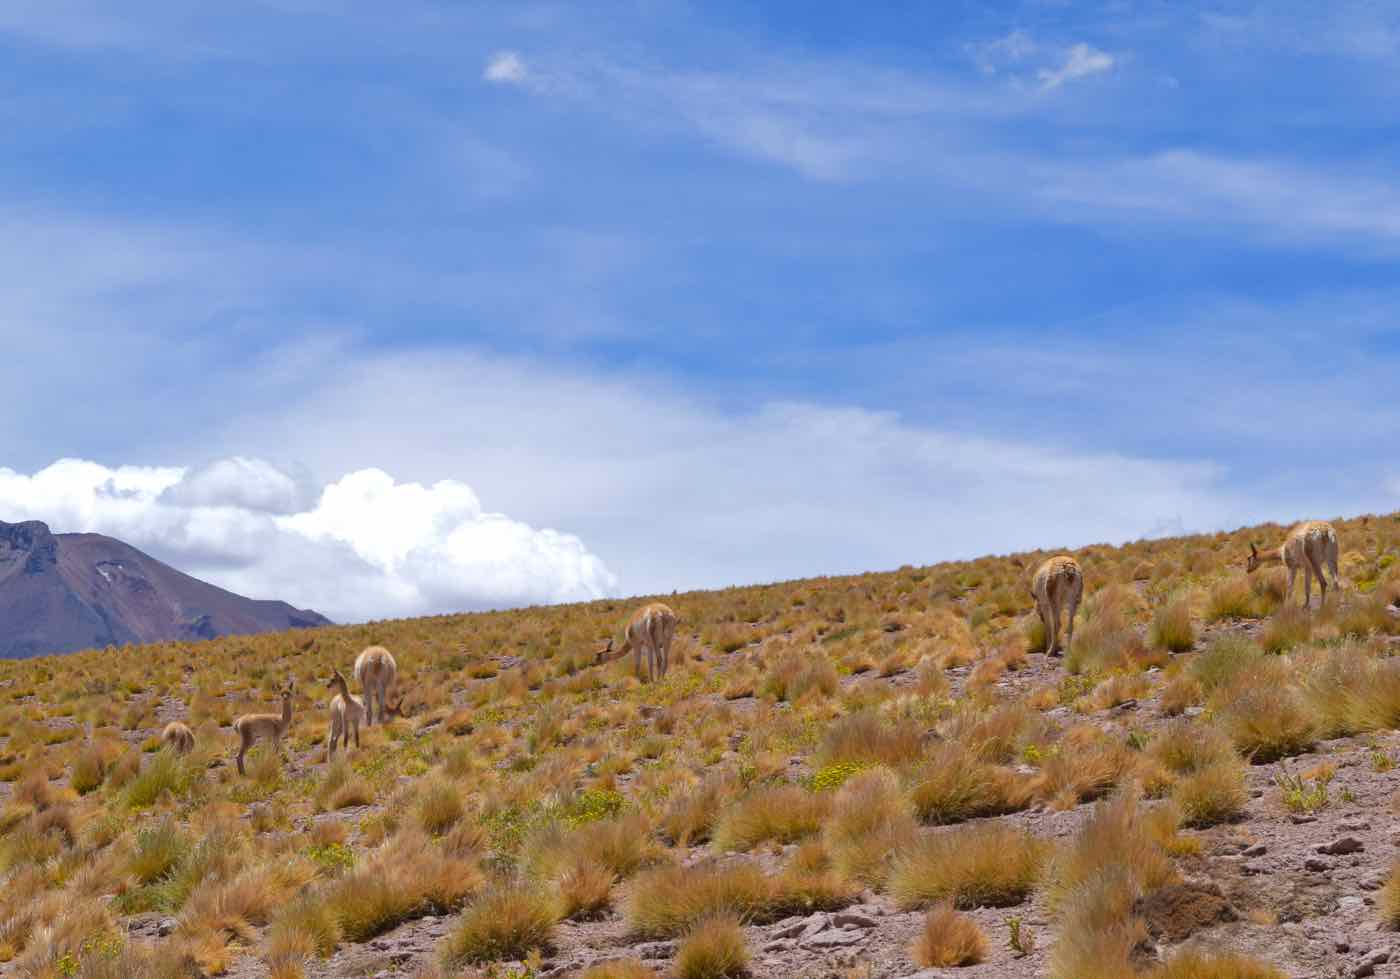 Vicunas grazing in the Atacama Highlands, Chile